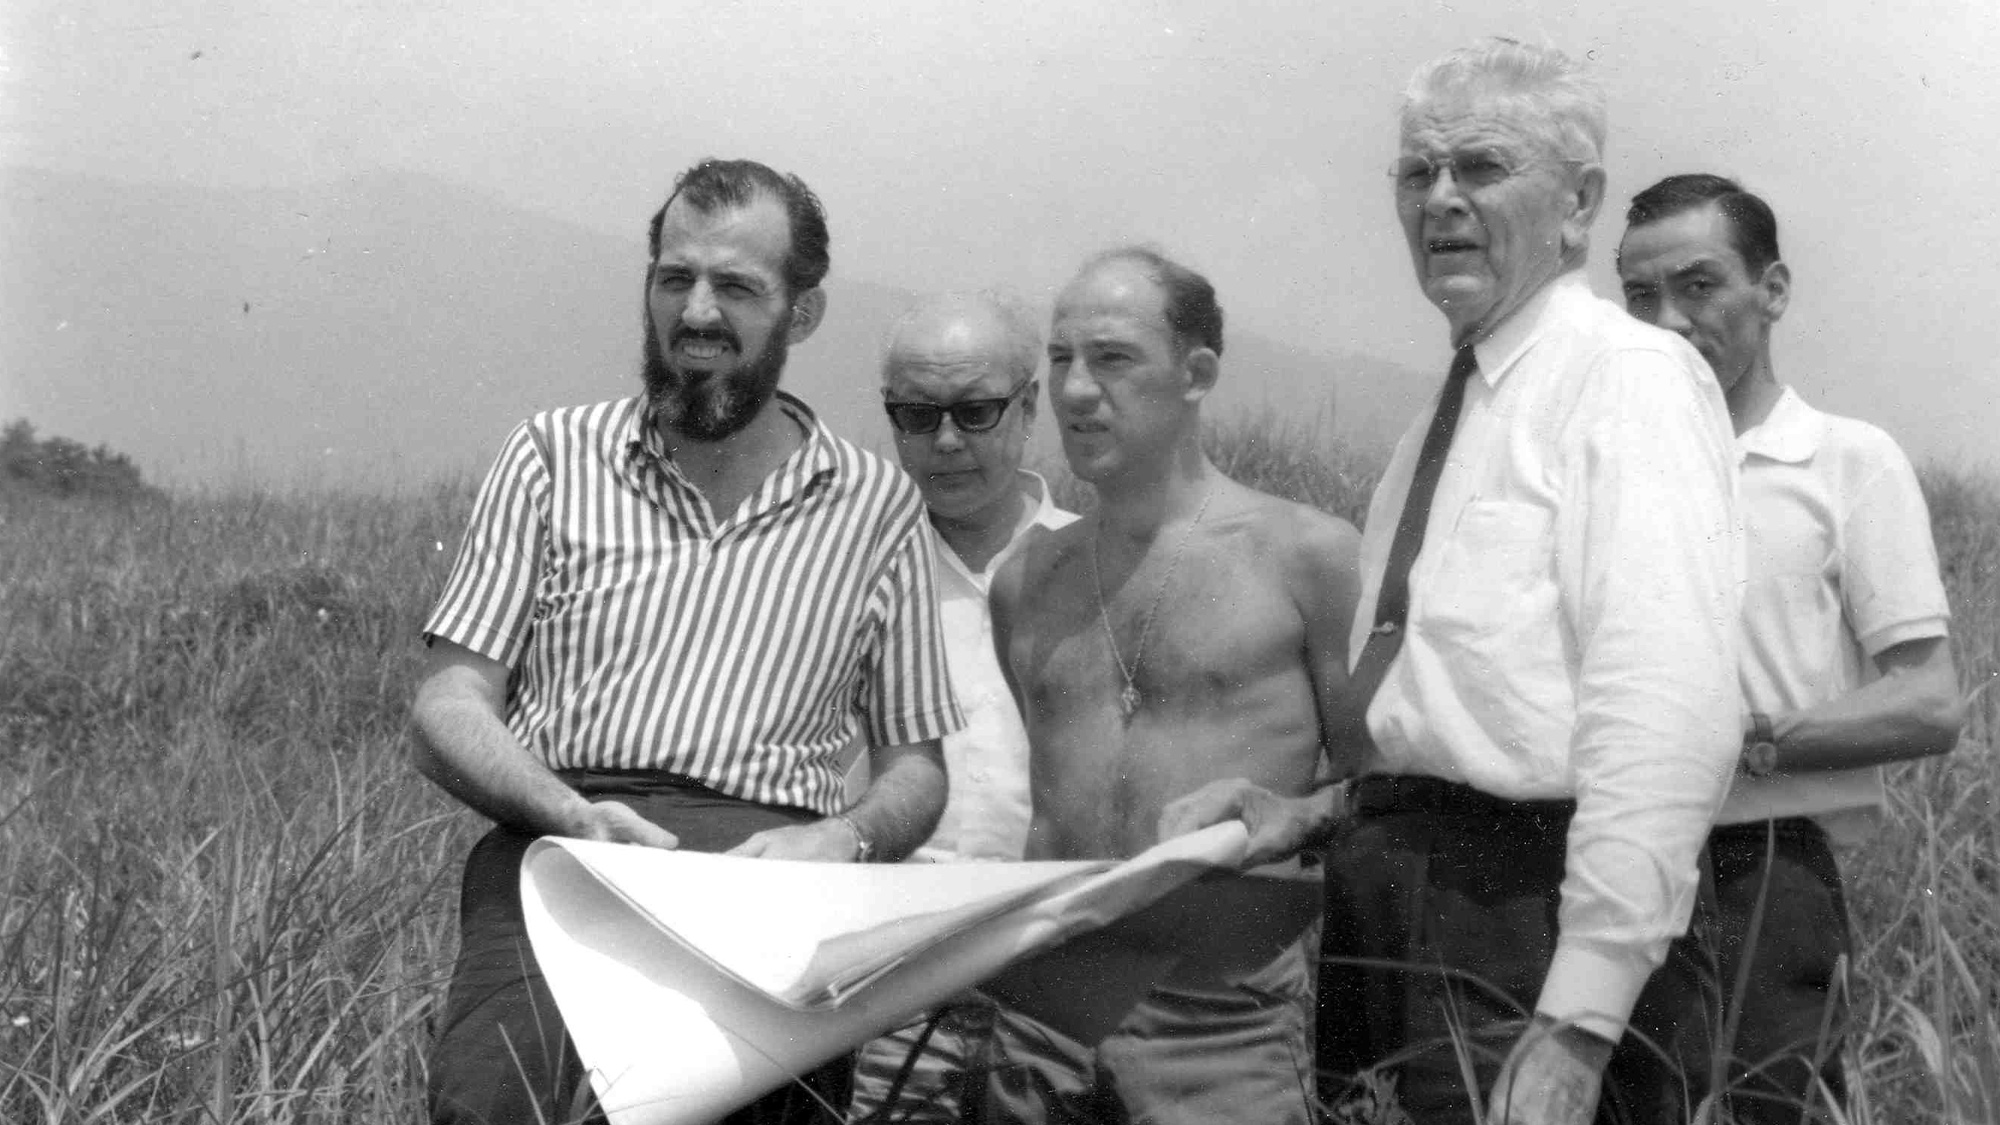 Stirling Moss and Don Nichols in Japan at the site of the proposed Fuji Speedway